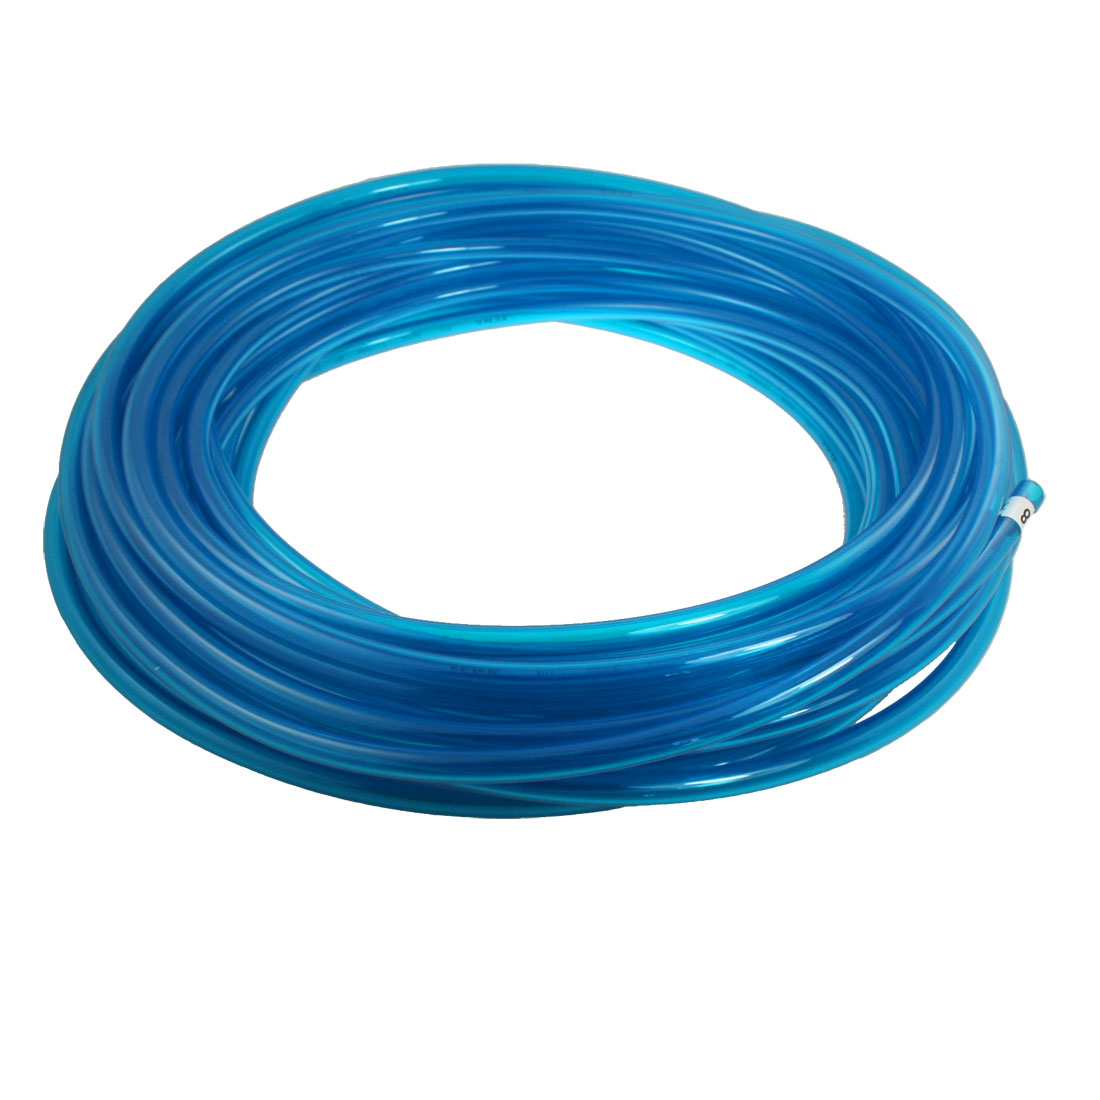 12mm x 8mm Air Pneumatic Polyurethane PU Hose Tube Pipe 25M 82Ft Clear Blue